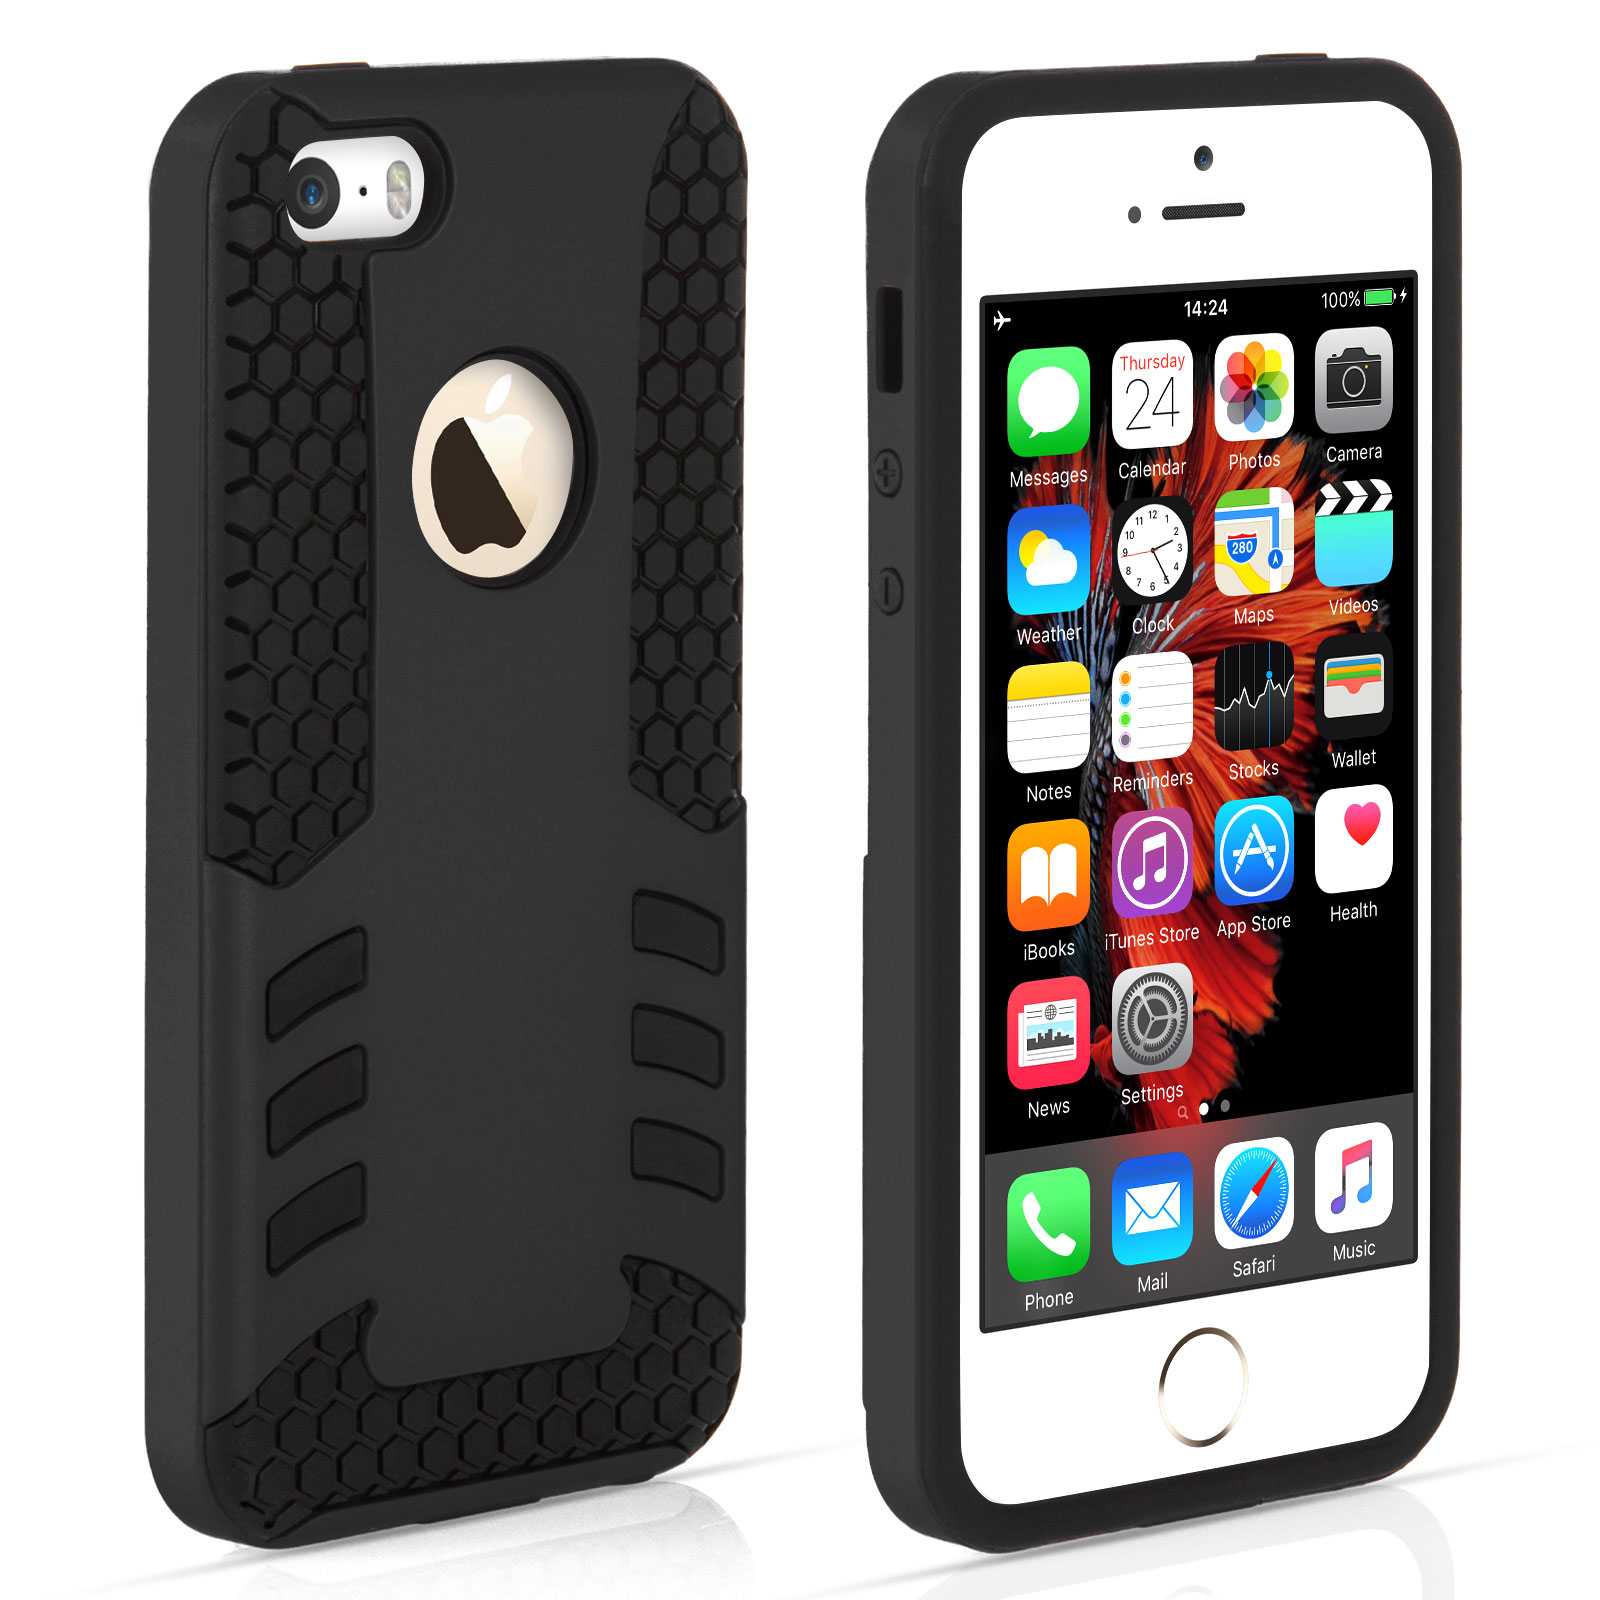 YouSave iPhone 5 / 5S / SE Border Combo Case - Black